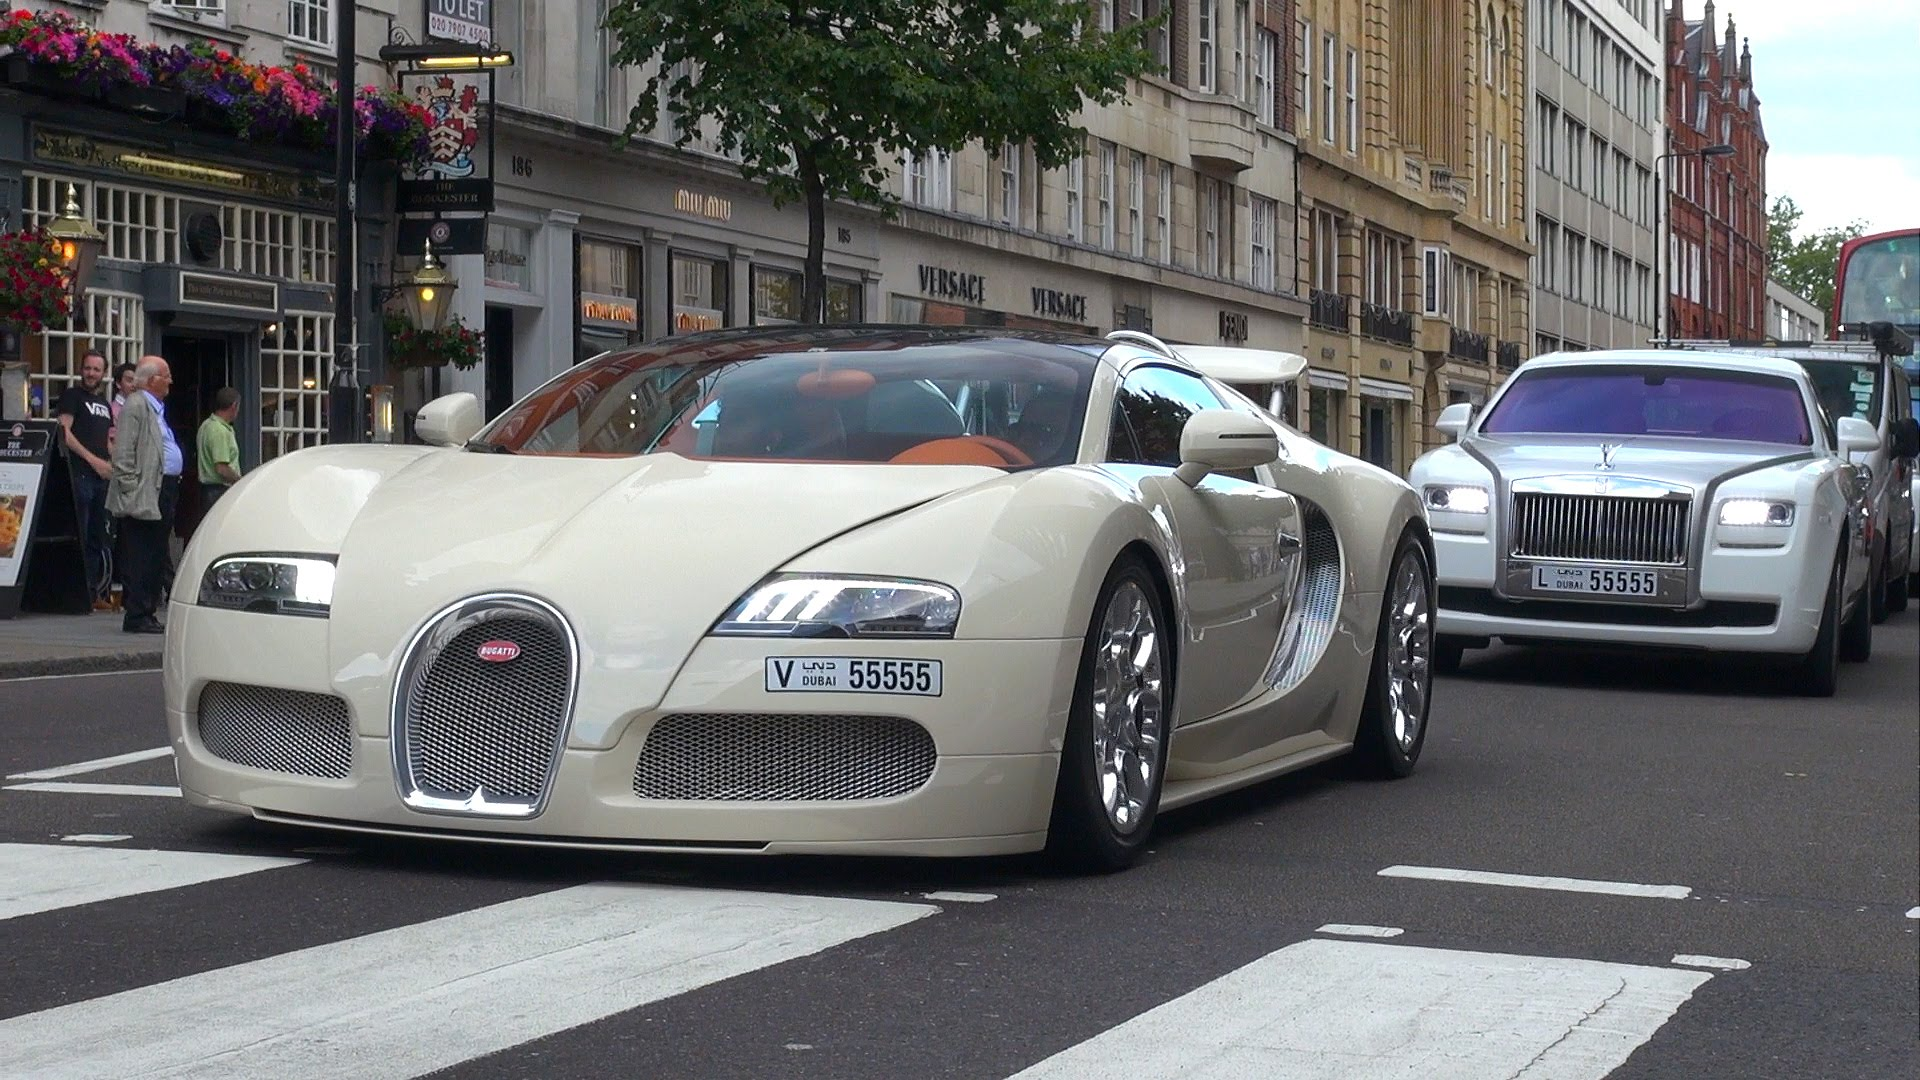 gorgeous-bugatti-veyron-16-4-grand-sport-hits-the-streets-of-london Remarkable Porsche 918 Spyder On the Road Cars Trend